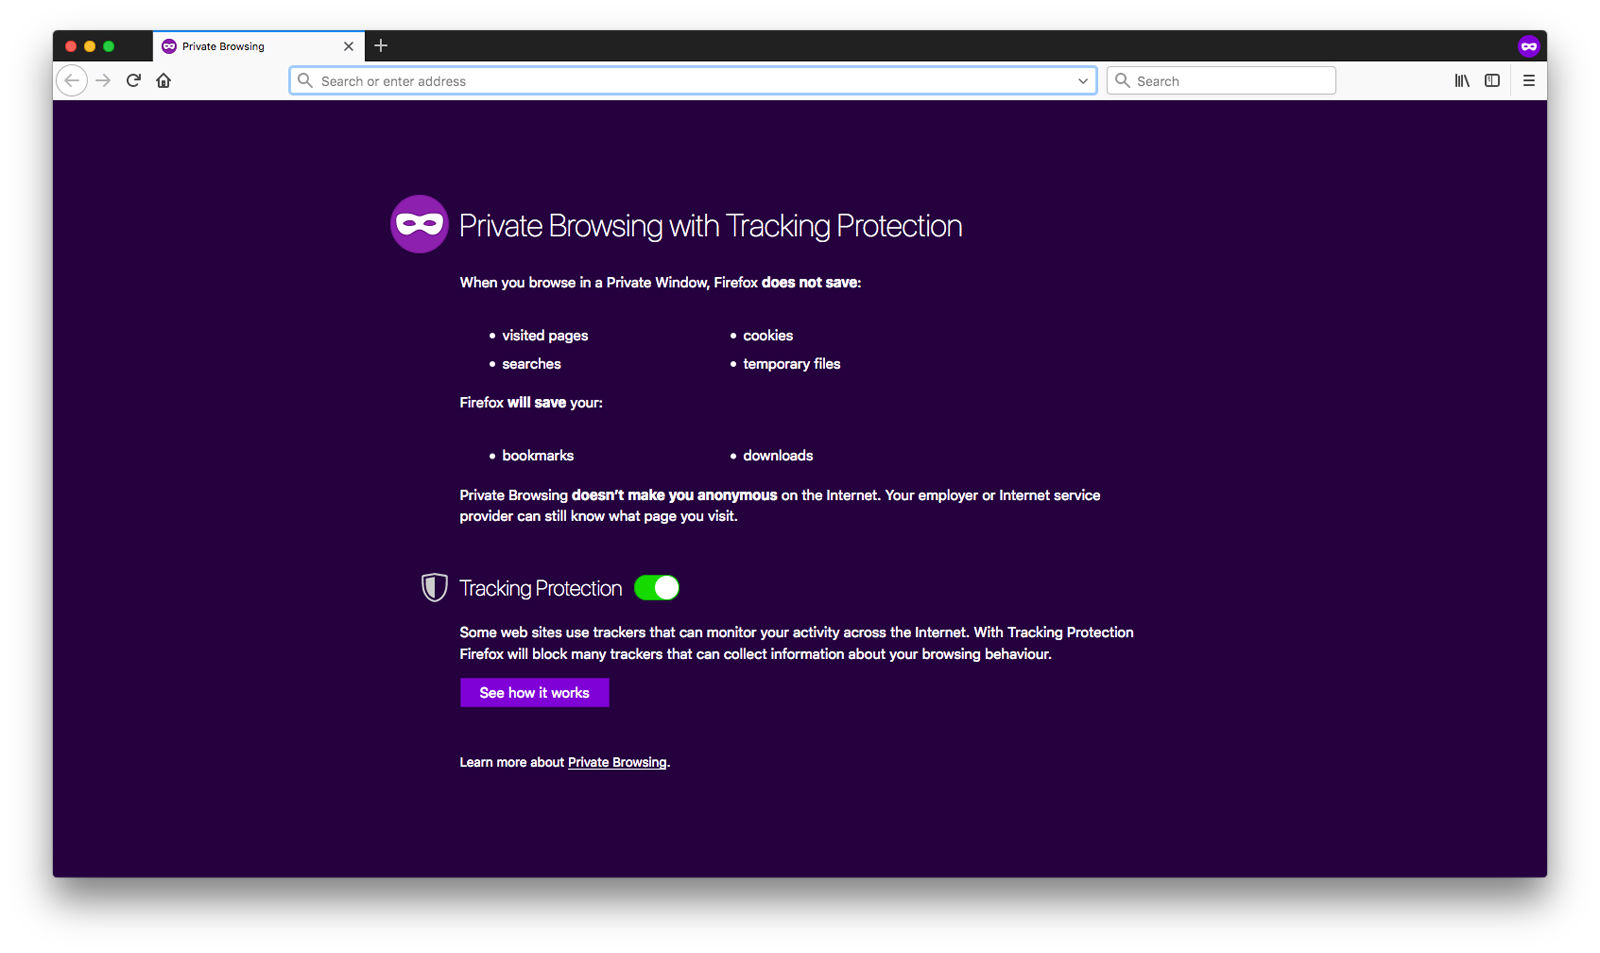 How to use private browsing on Mac: Firefox